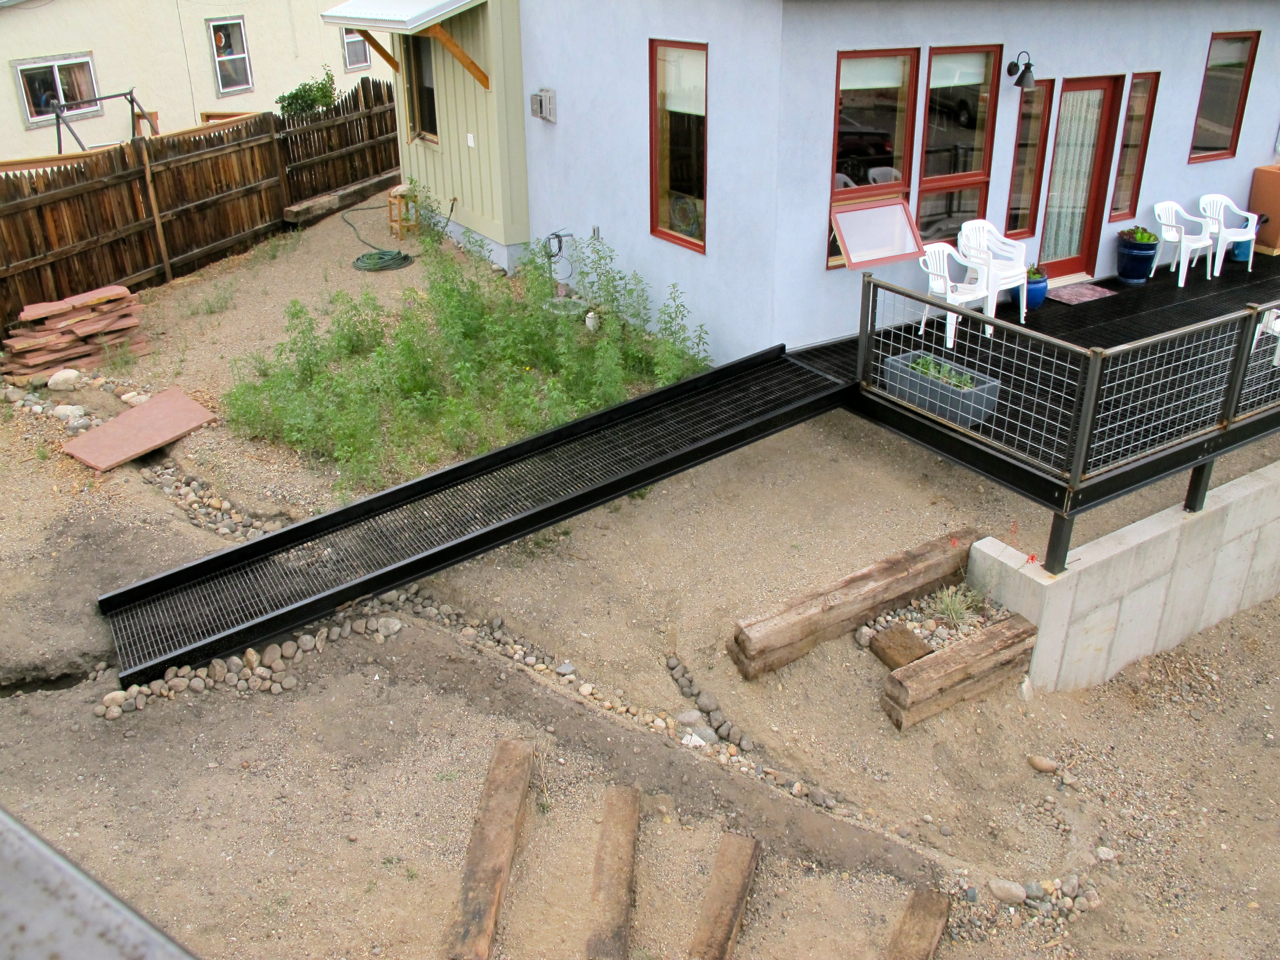 The drainage from the second-story deck of Treehouse